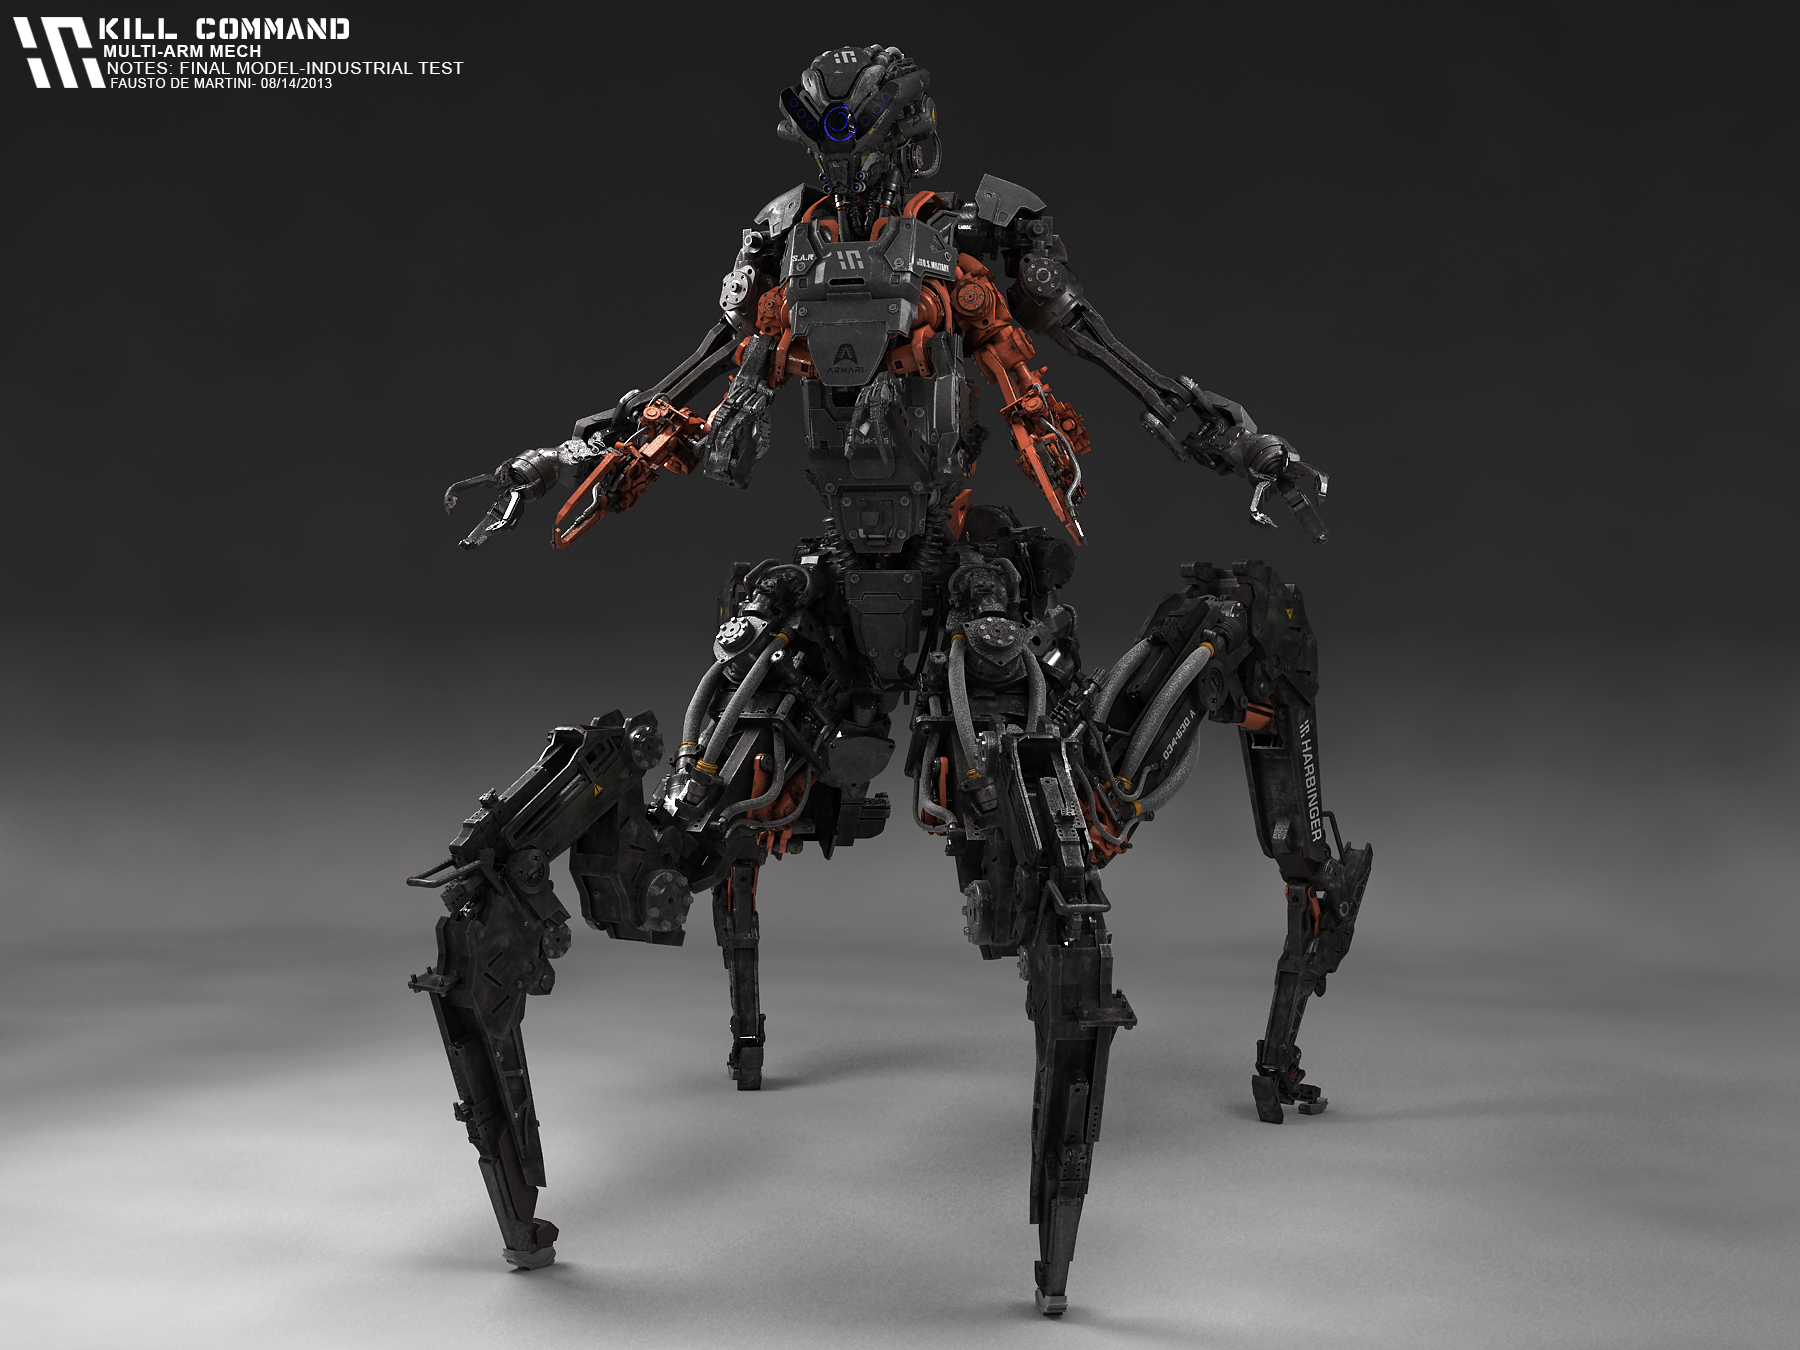 KILLCOMMAND_MultiArms_081413_IndustrialTestRedB_FDM.jpg